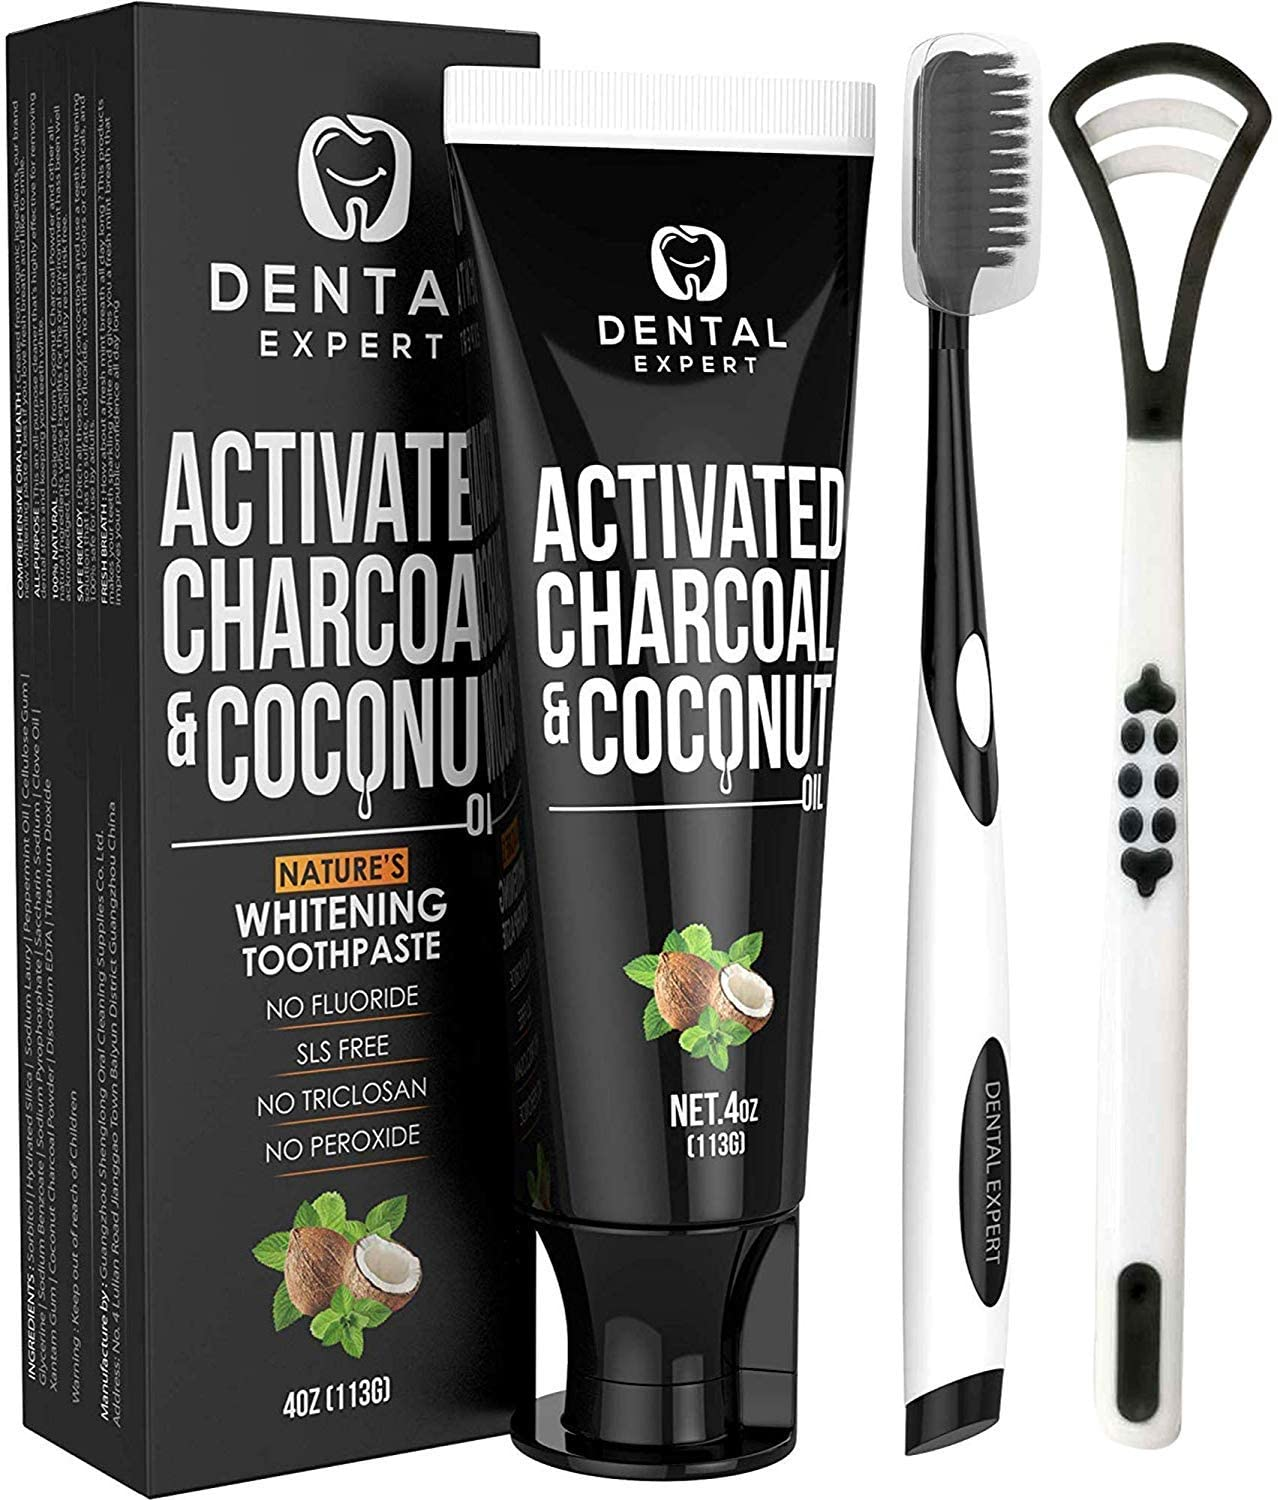 activated charcoal toothpaste as natural teeth whitening aid, does it work